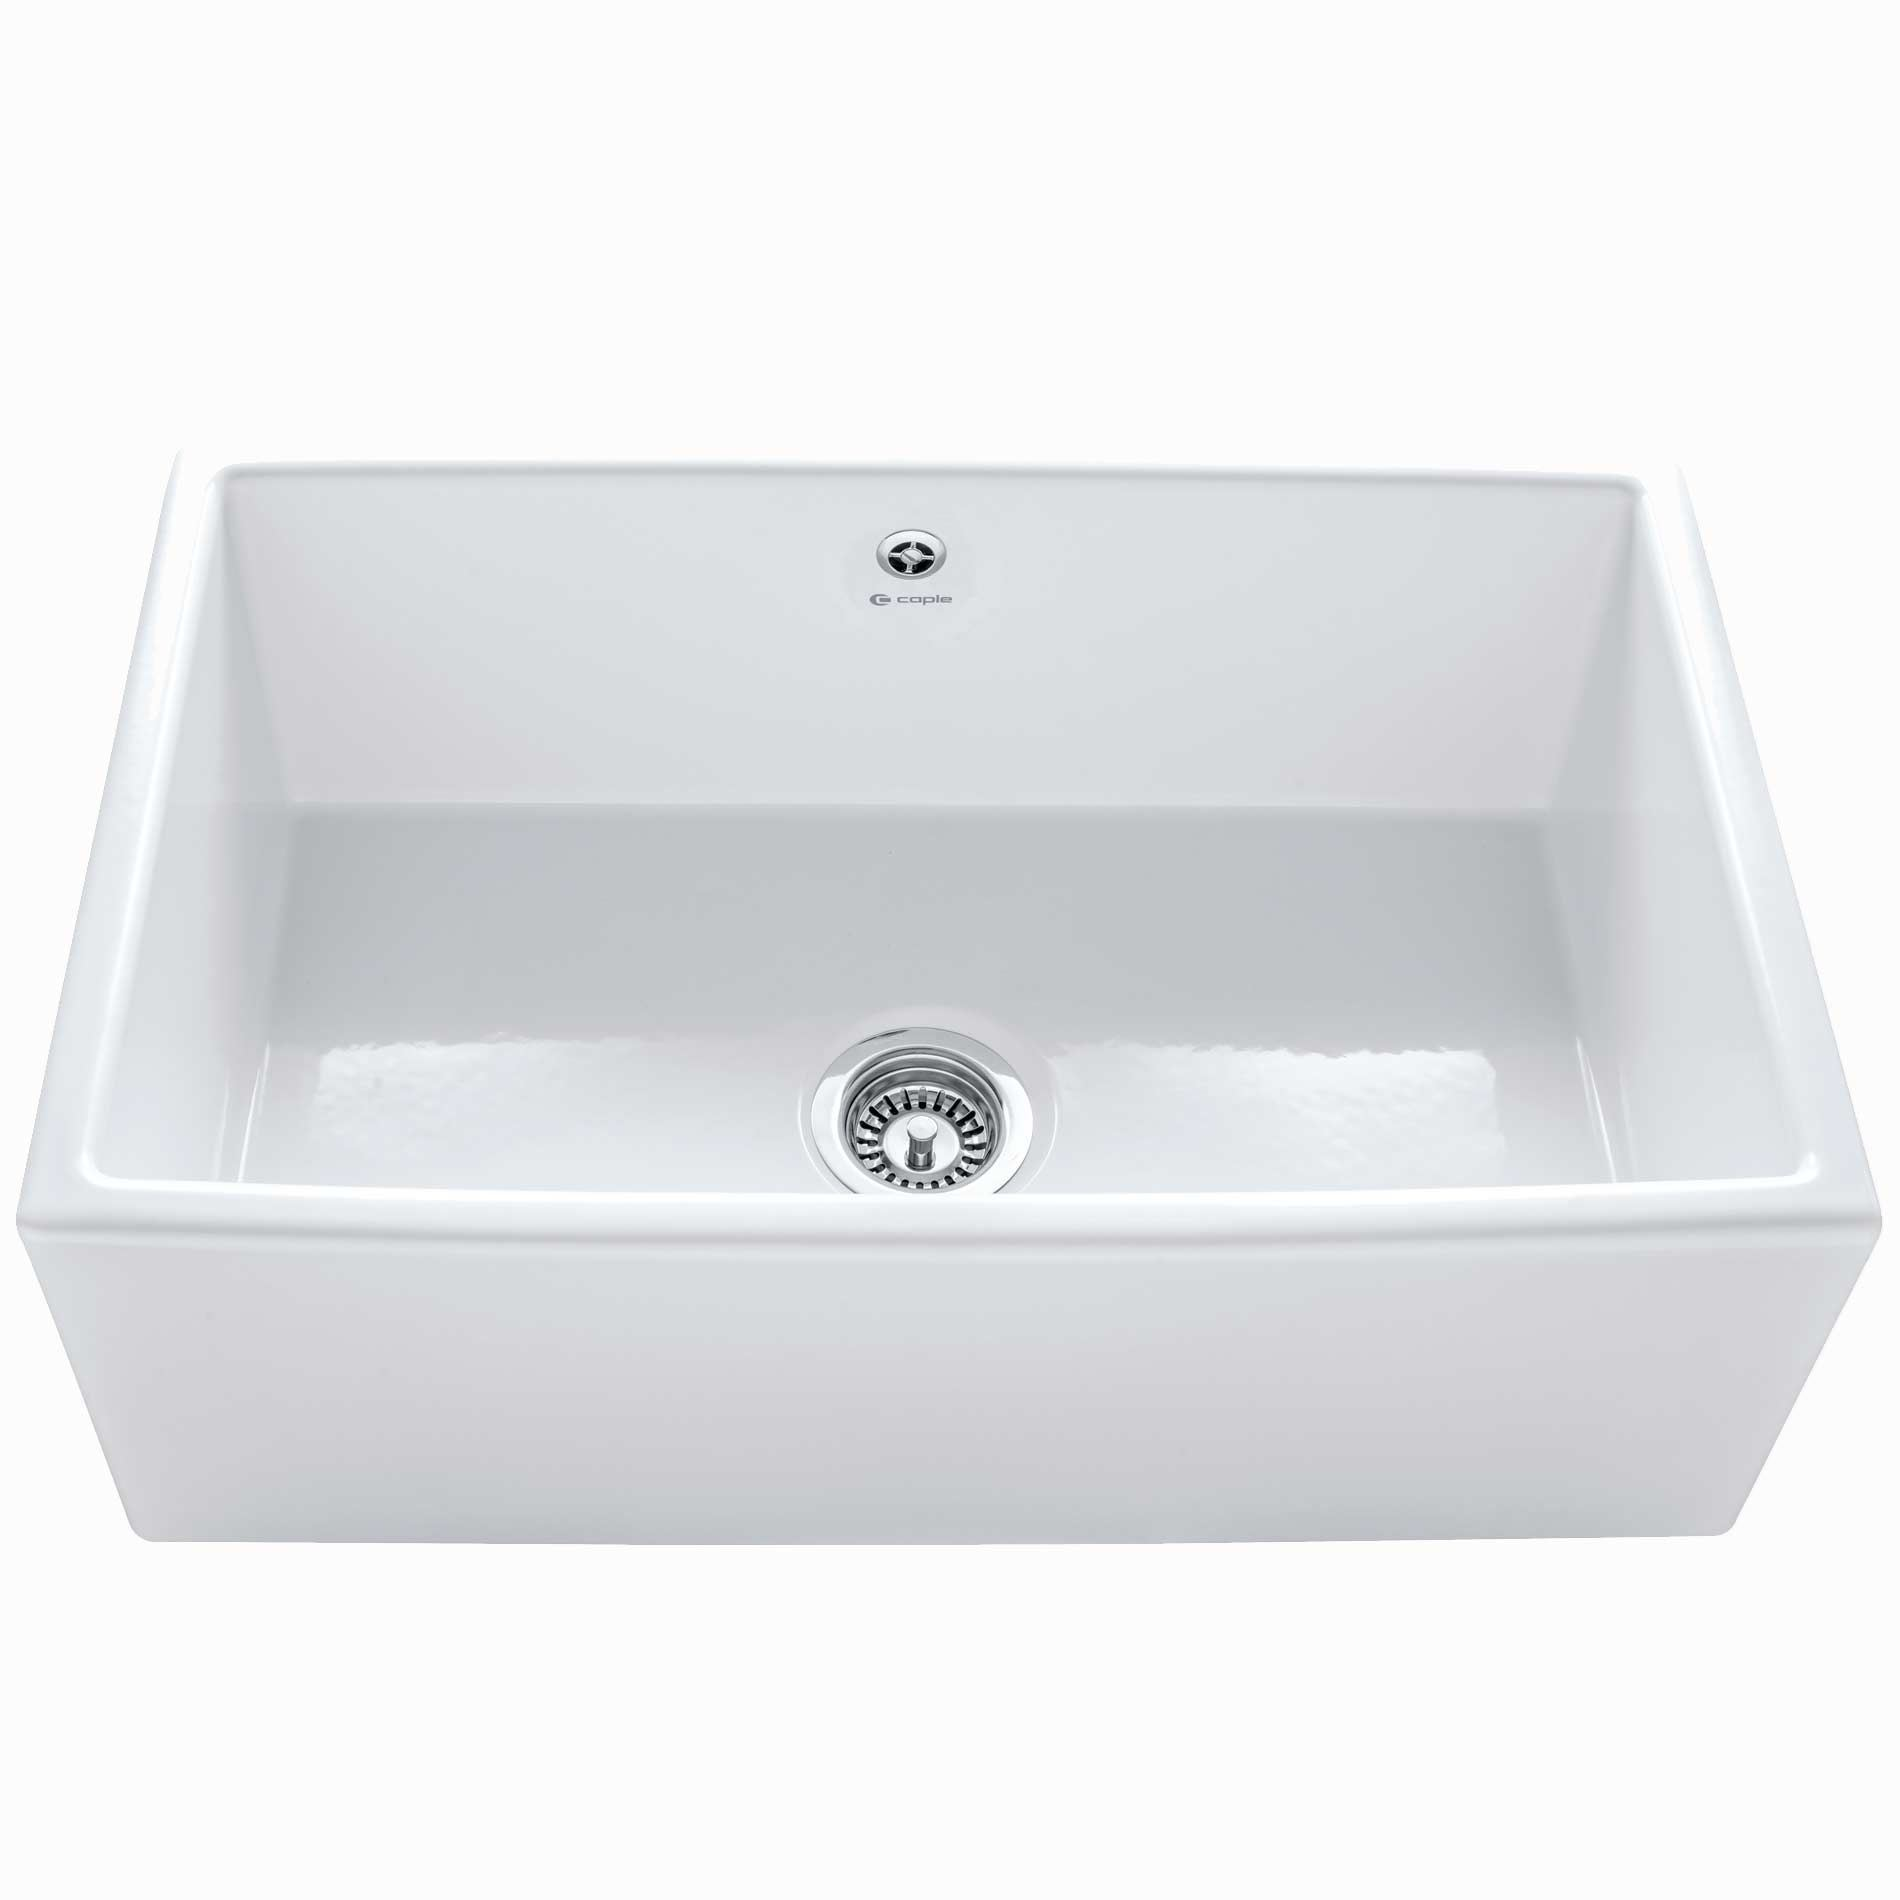 Ceramic Farmhouse Sink : Caple: Farmhouse 762 Ceramic Sink - Kitchen Sinks & Taps